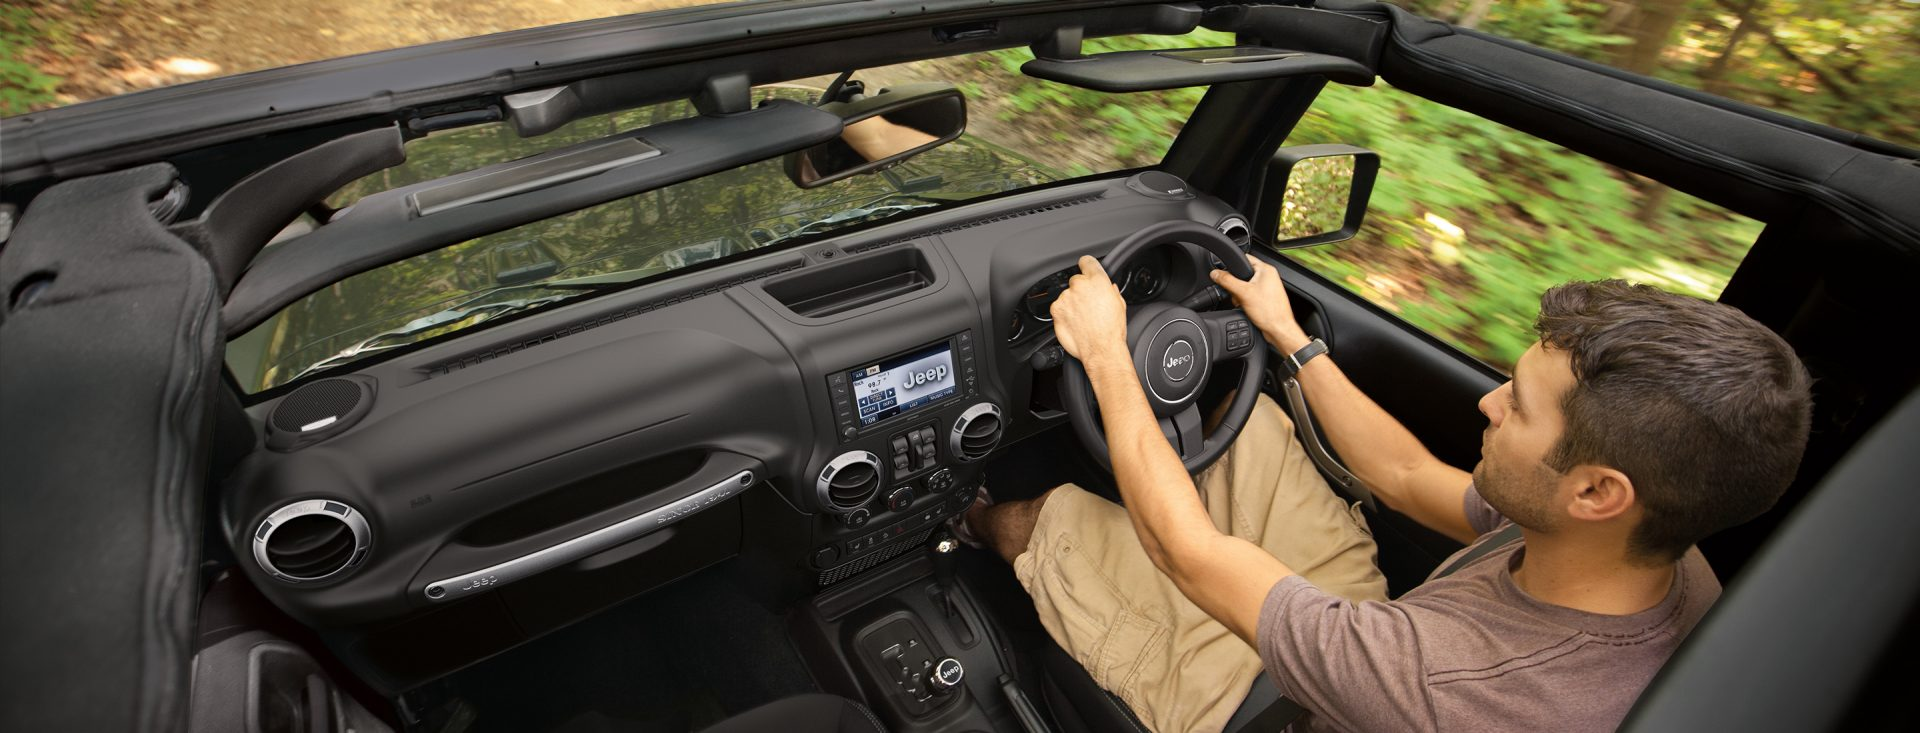 jeep wrangler unlimited interior features. Black Bedroom Furniture Sets. Home Design Ideas